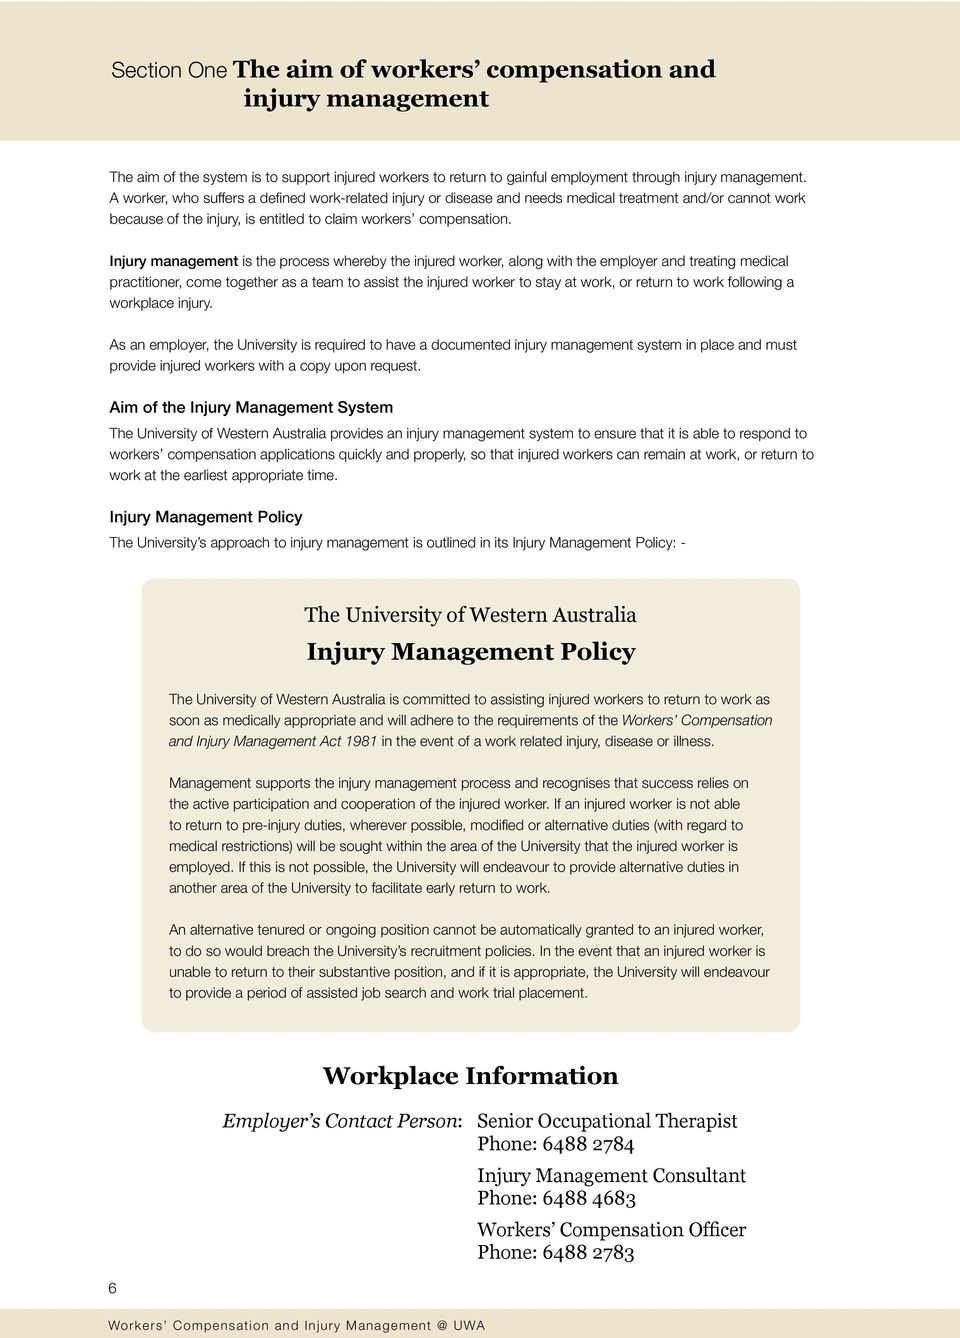 Injury management is the process whereby the injured worker, along with the employer and treating medical practitioner, come together as a team to assist the injured worker to stay at work, or return